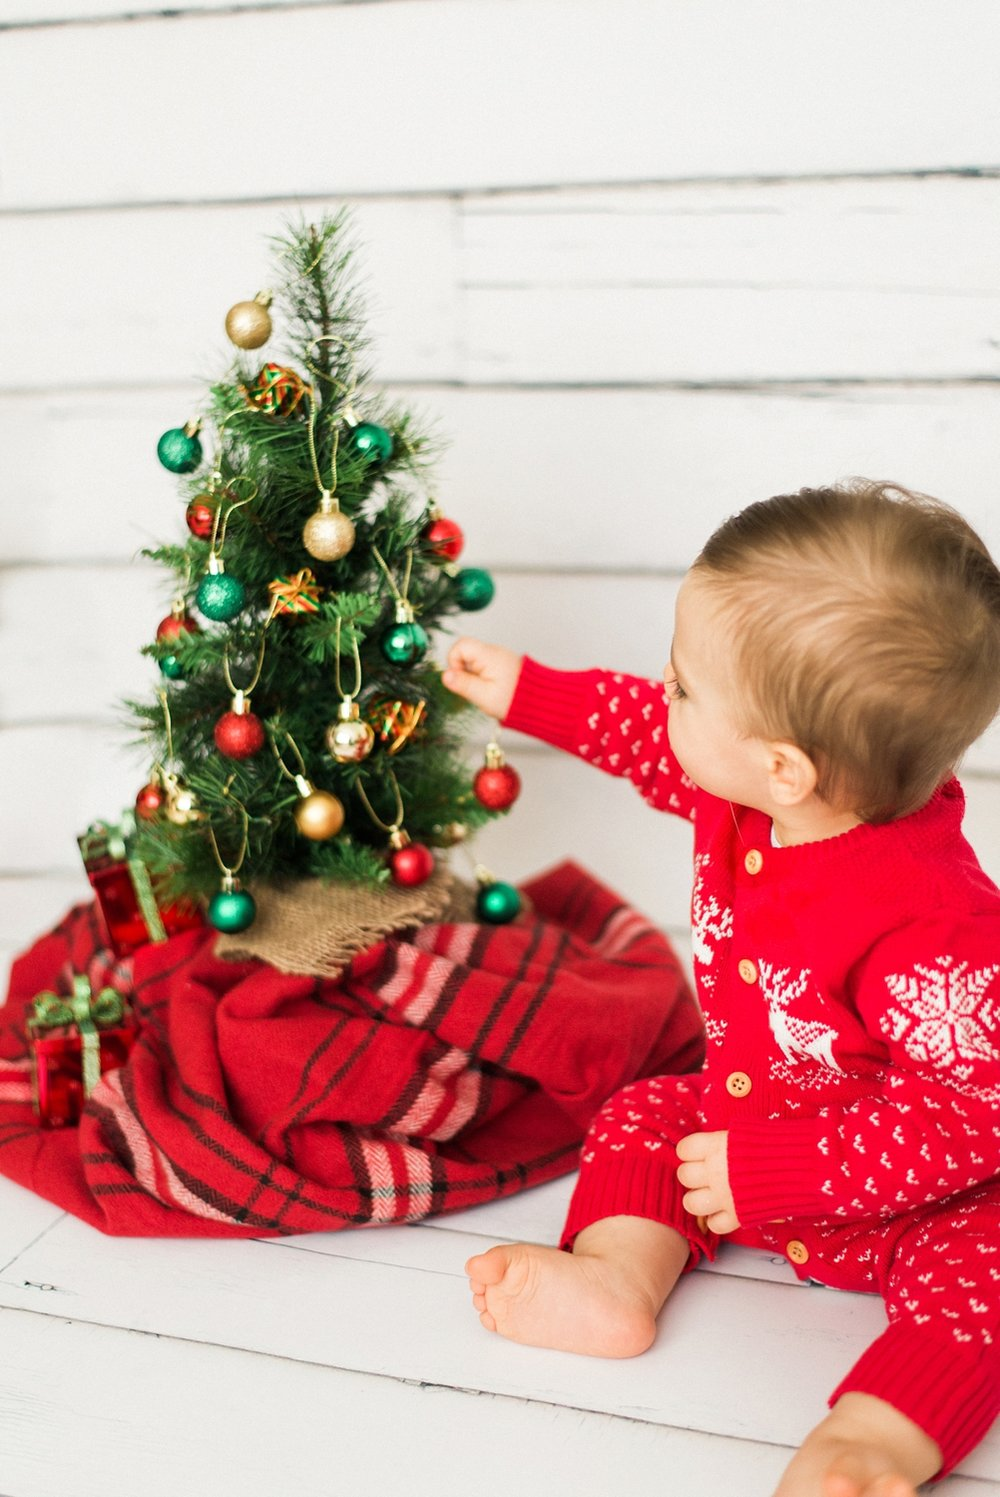 portland-newborn-christmas-tree-holiday-photos-1-year-baby-portrait-session-091_cr.jpg